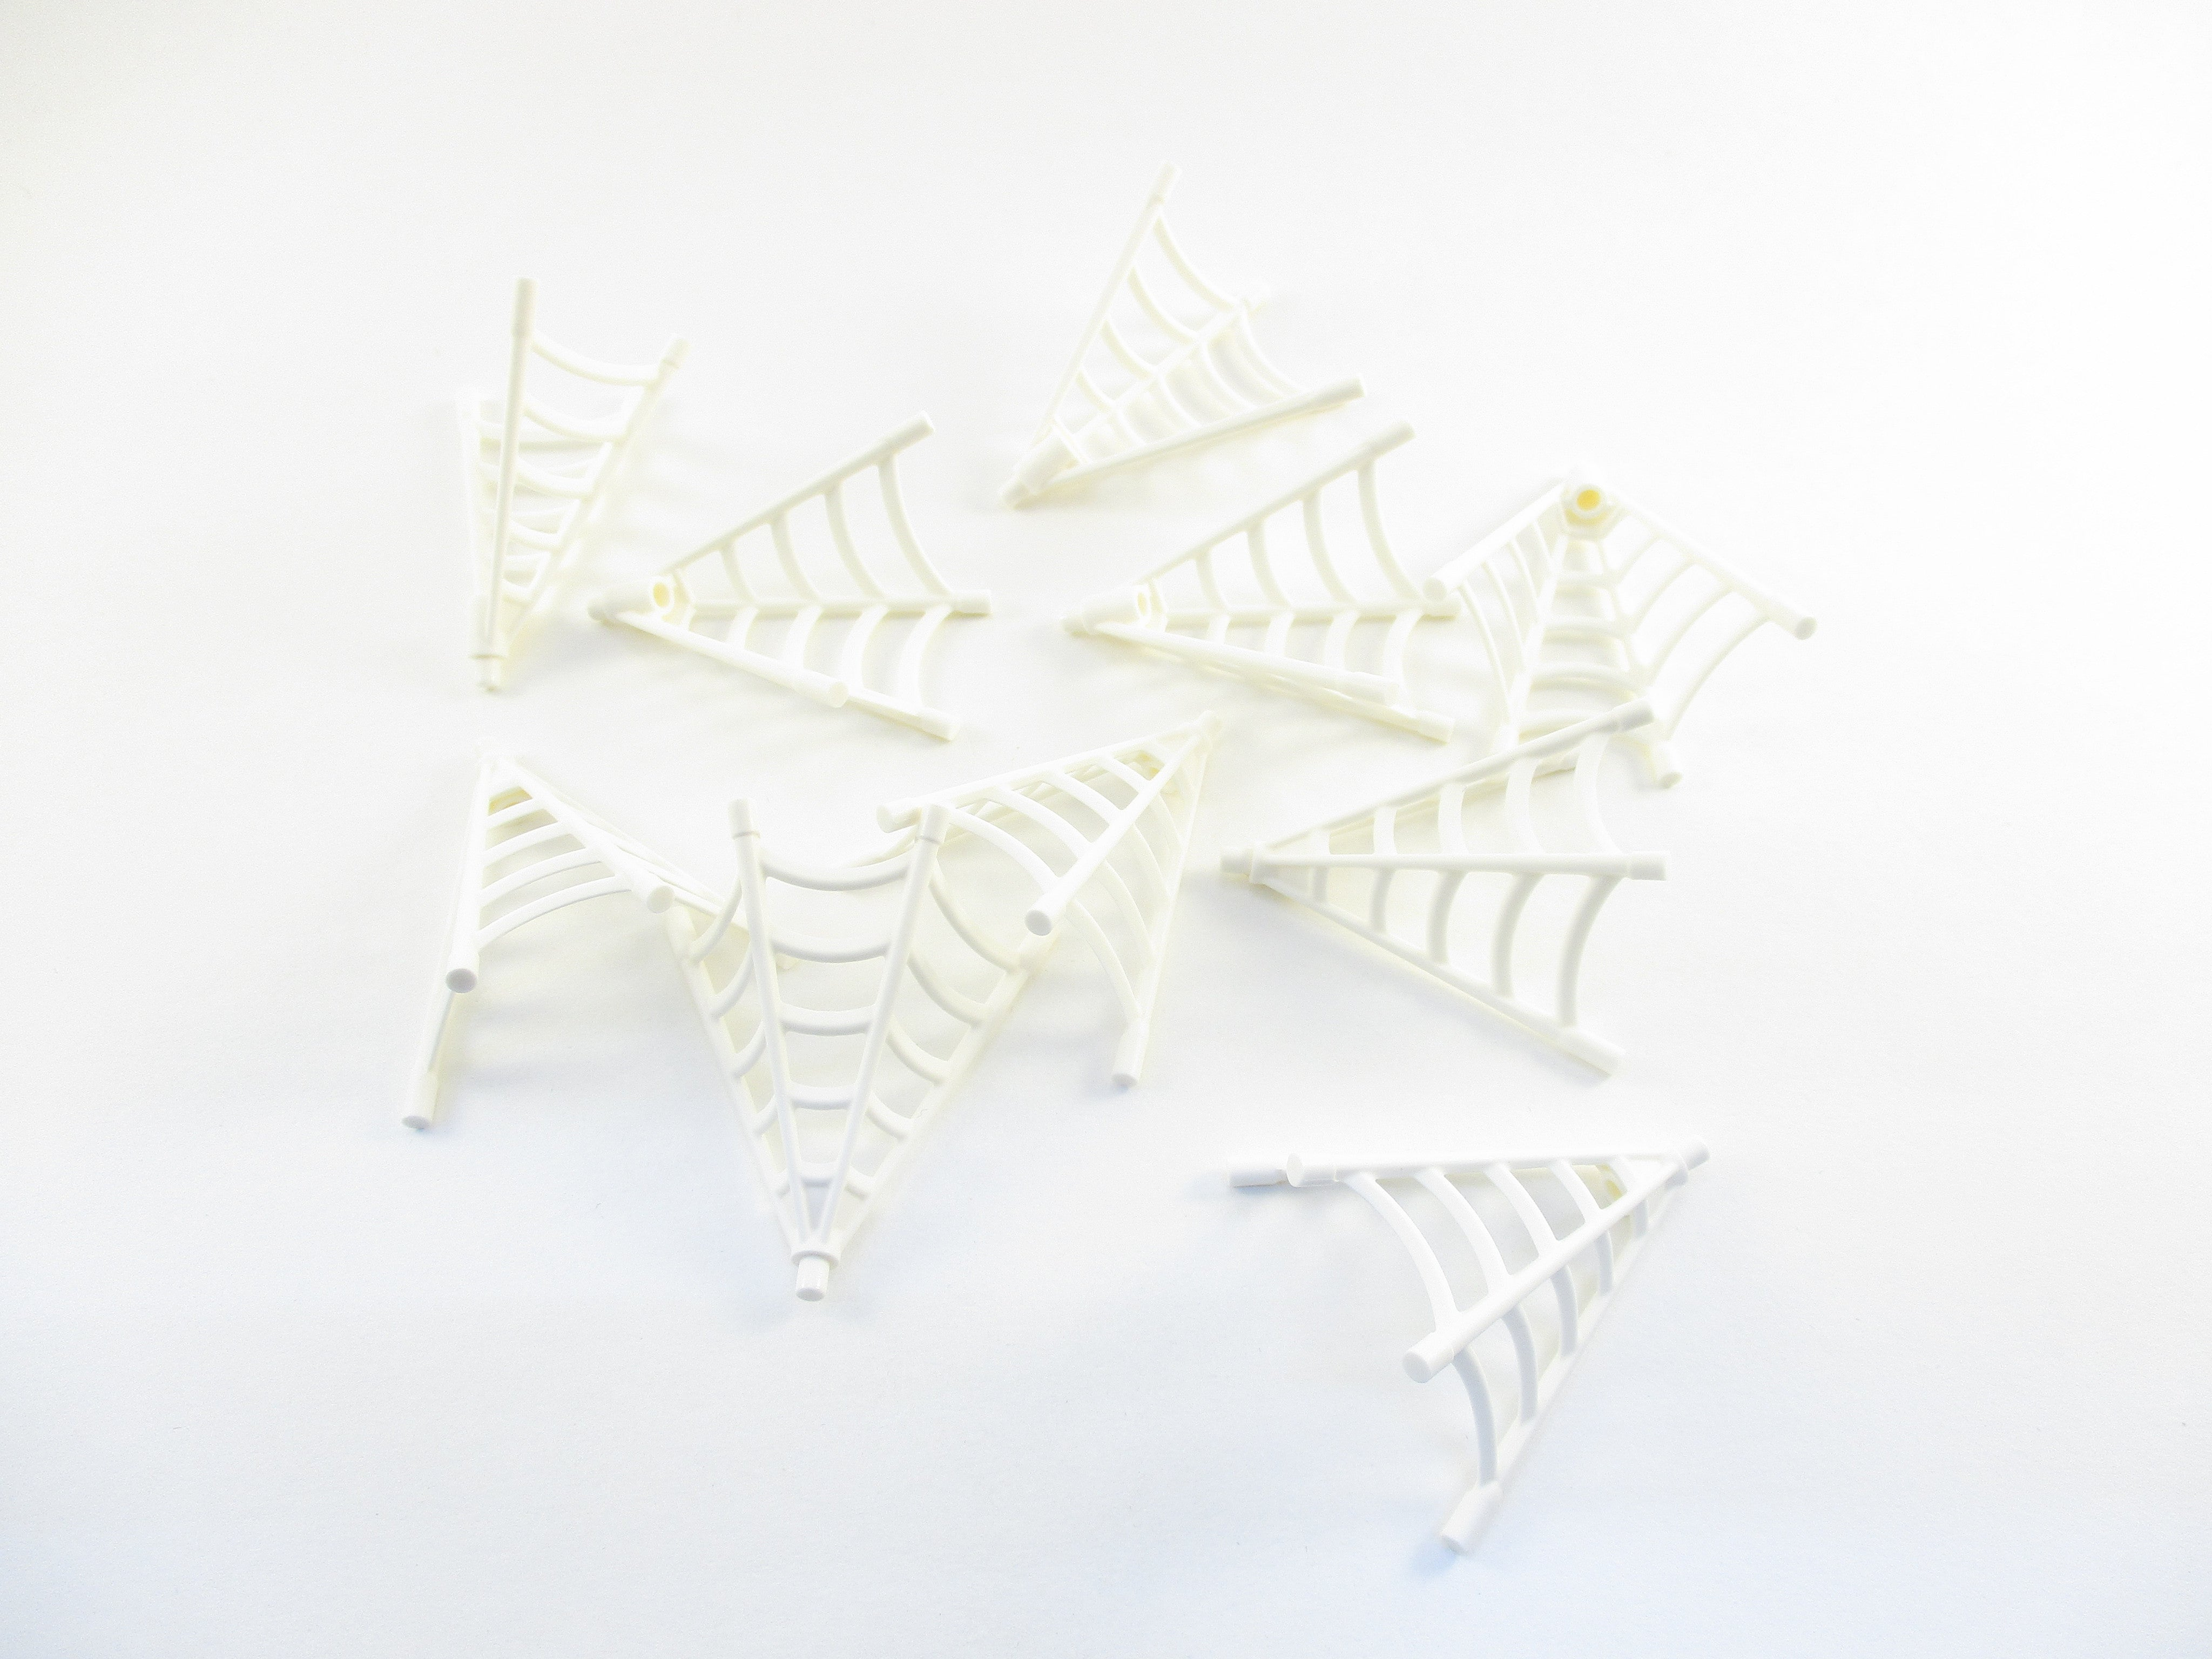 LEGO White Minifig Weapon Spider Web Half-Cone Shaped Lot of 10 Parts Pieces 25895